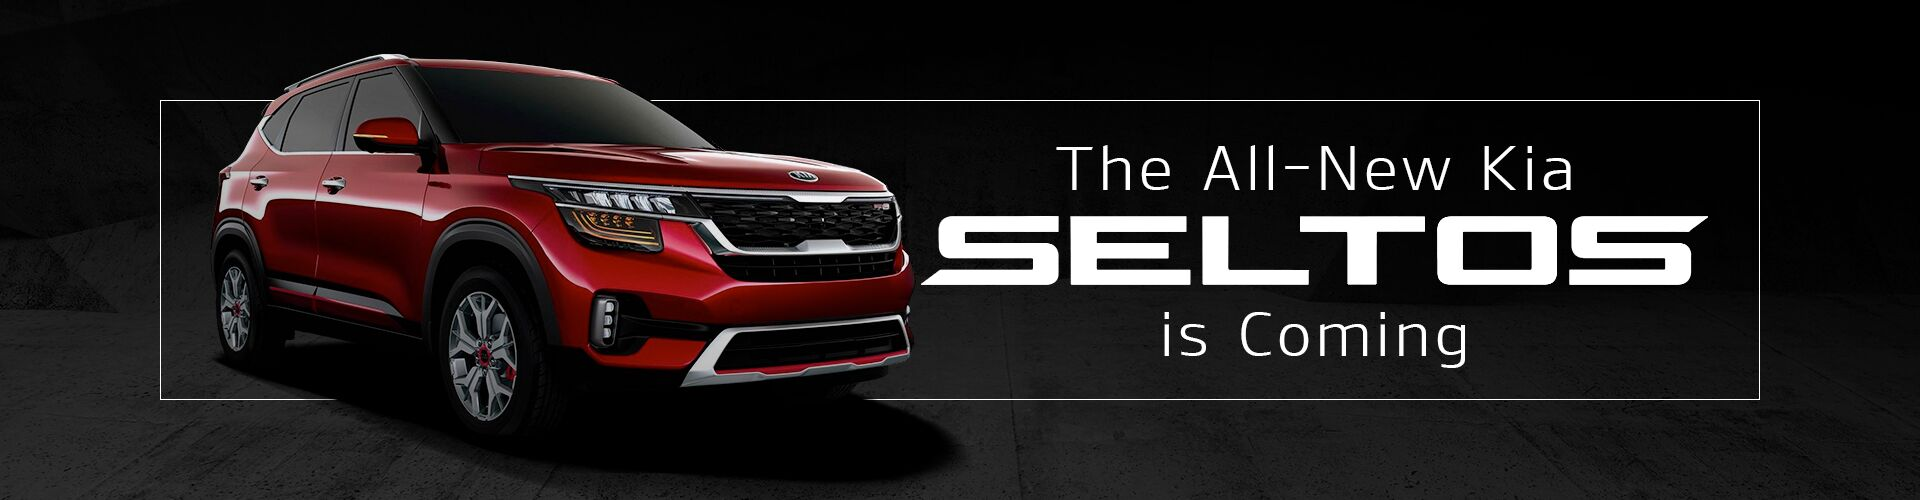 All-New Kia Seltos